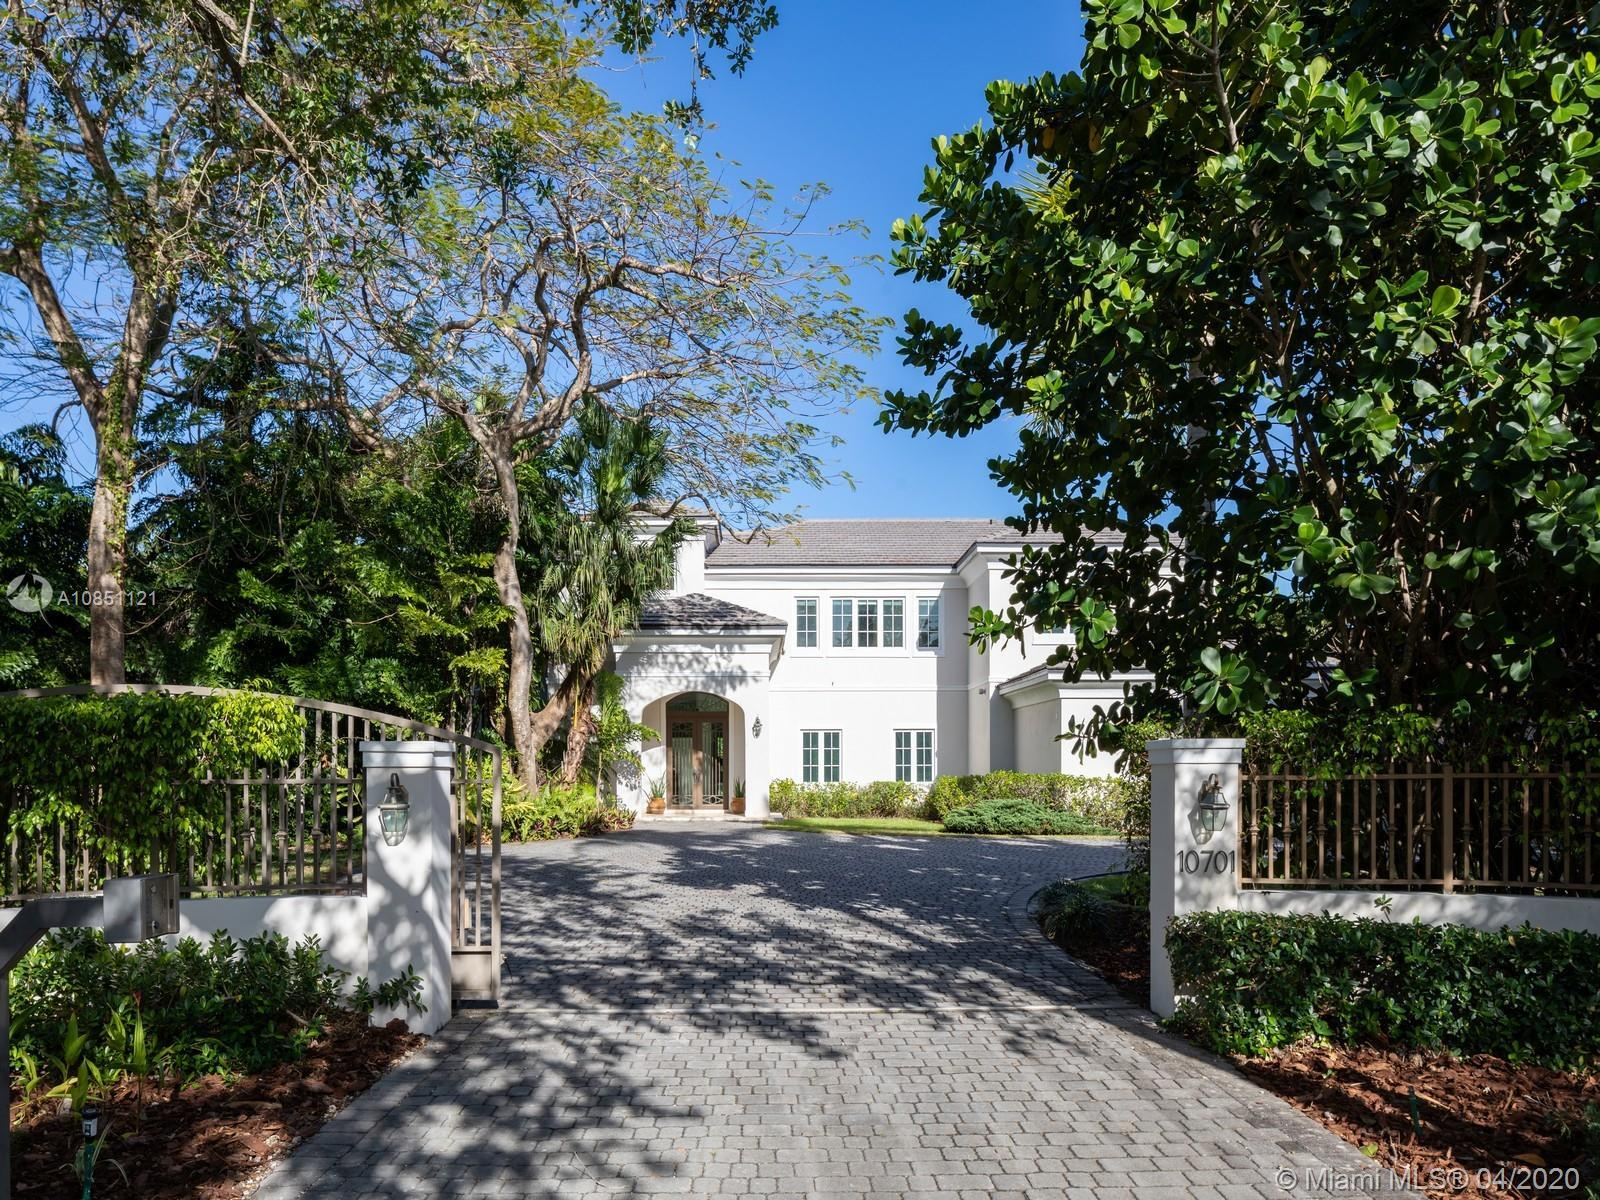 Elegant Transitional Estate in the heart of Pinecrest w/a modern flare, clean lines & neutral colors